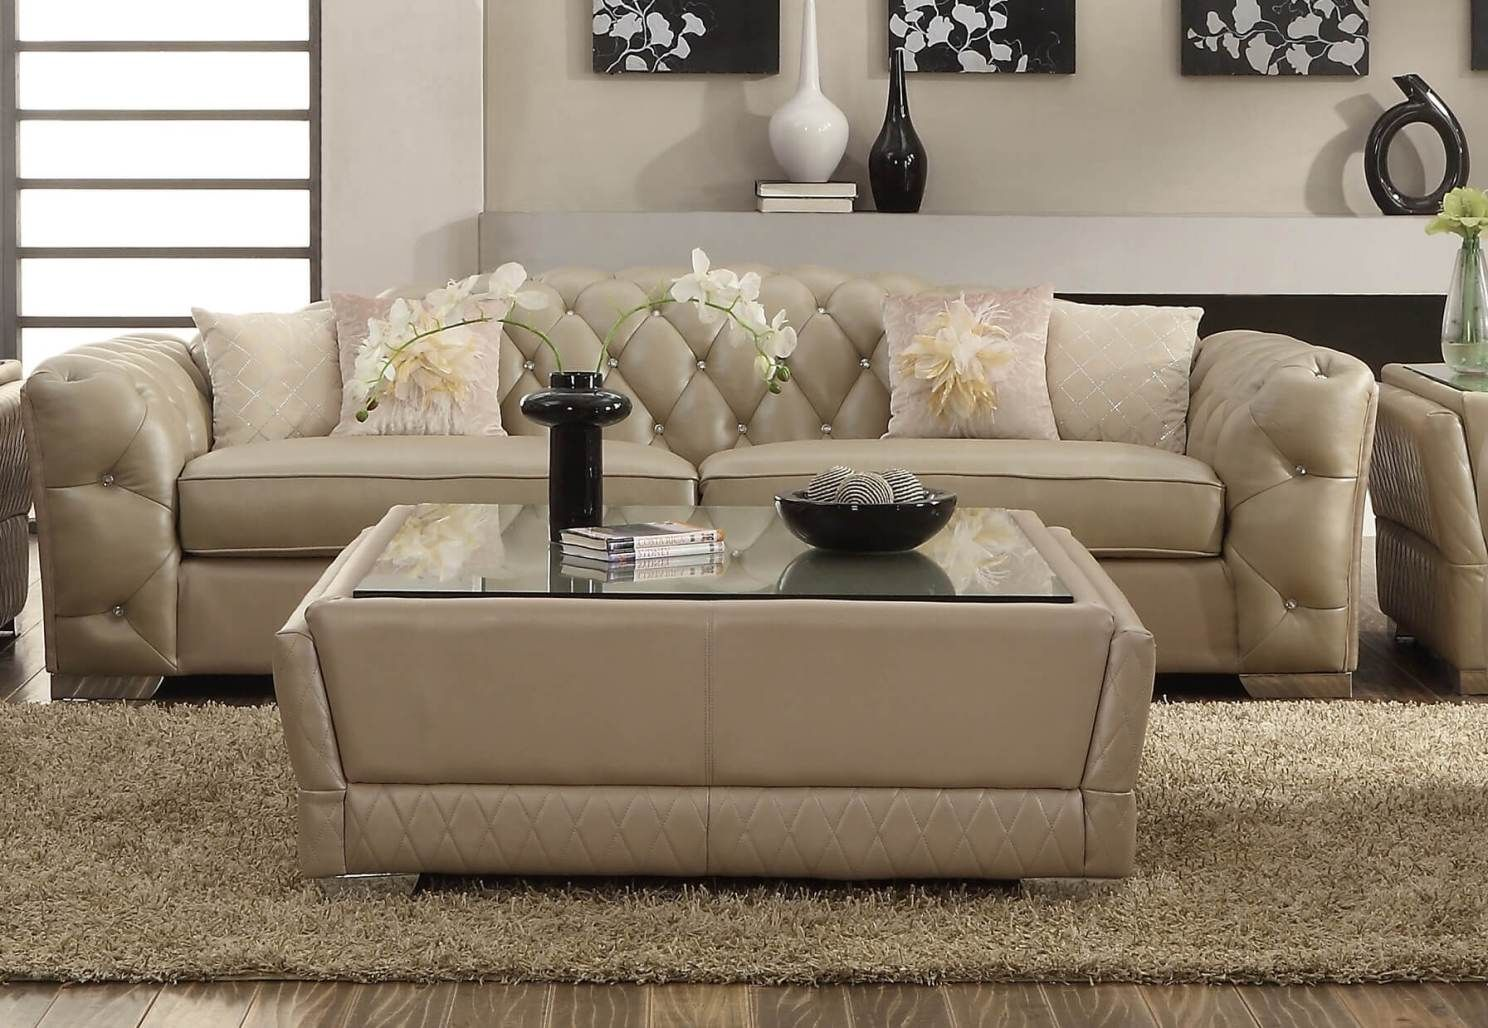 Attirant Do You Know How To Choose Your Sofa Living Room? Hereu0027s How!